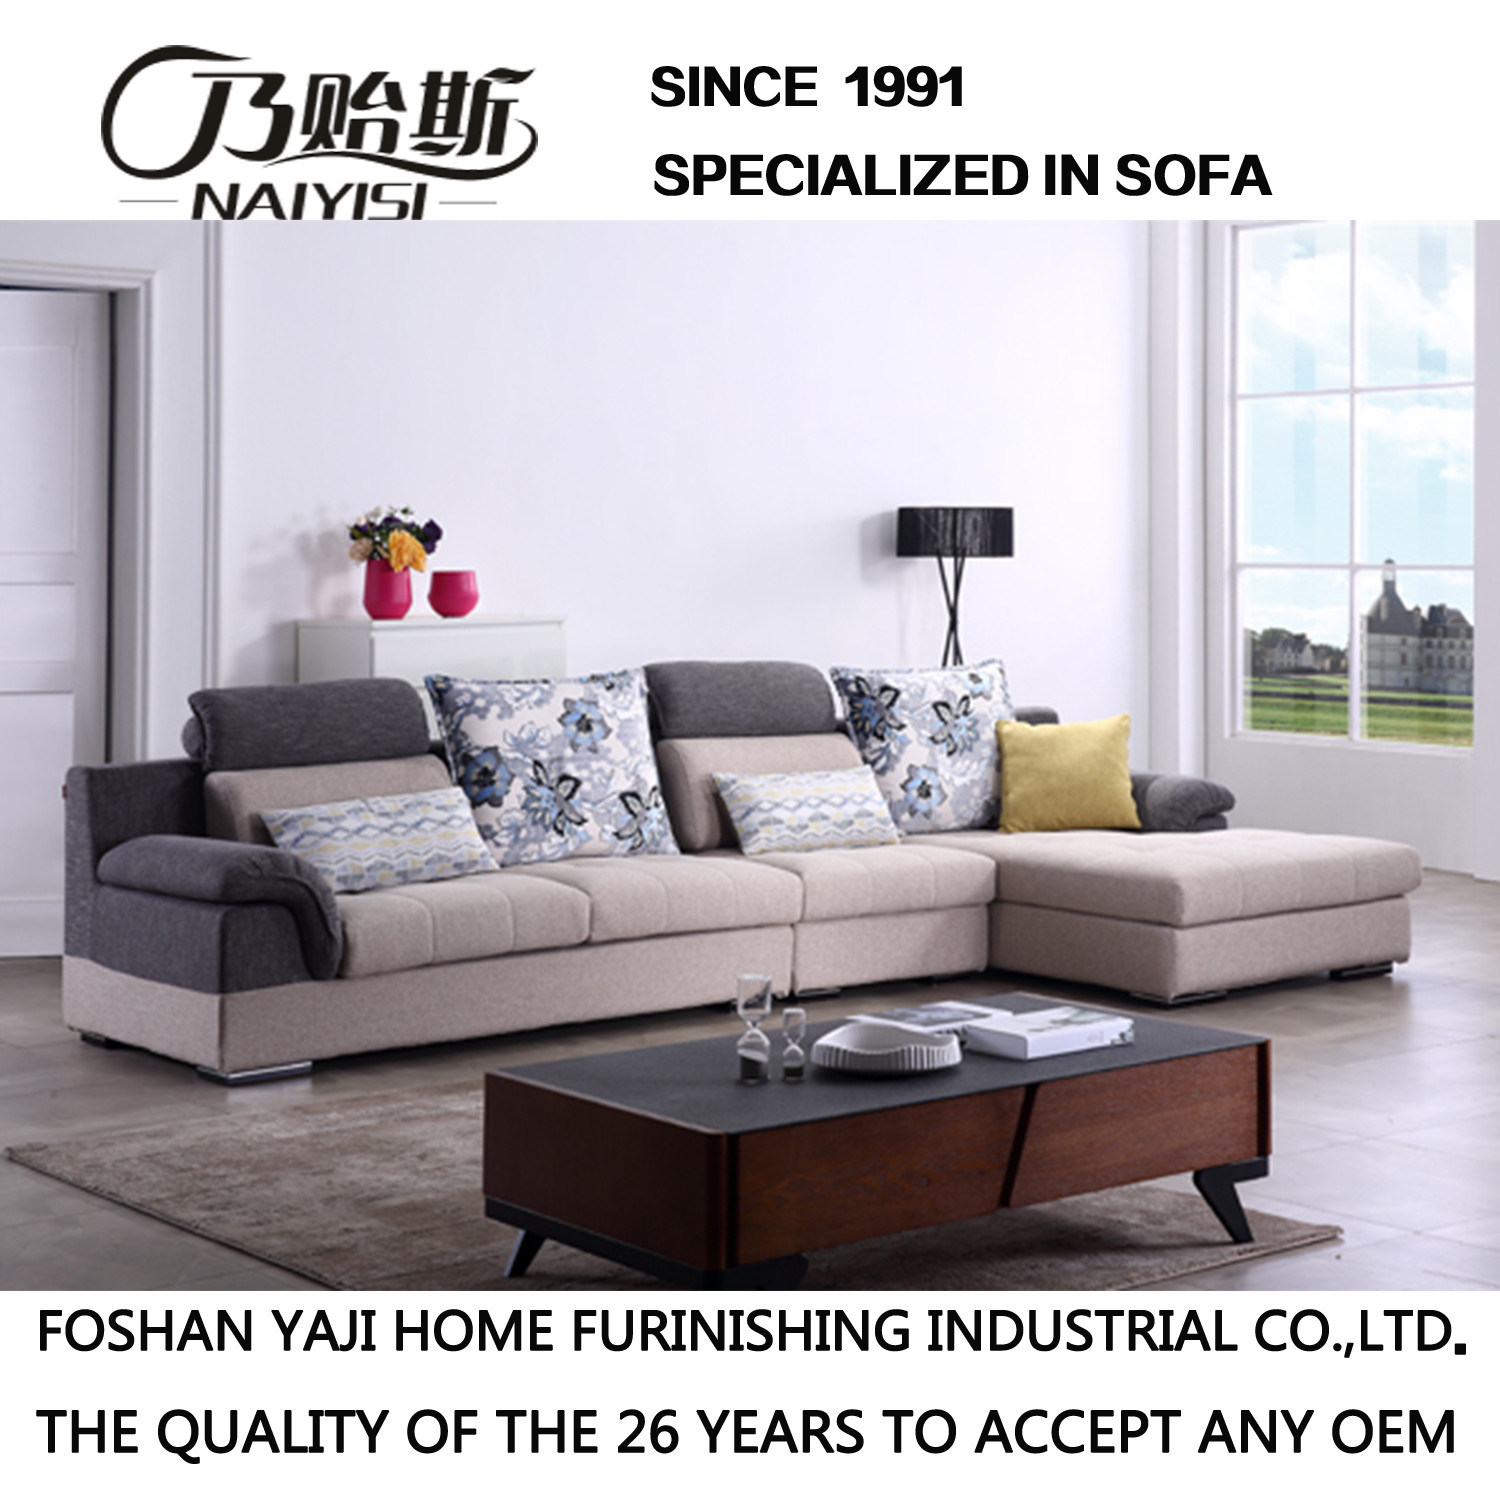 Modern Design Leisure Sofa for Living Room Home Furniture -Fb1145